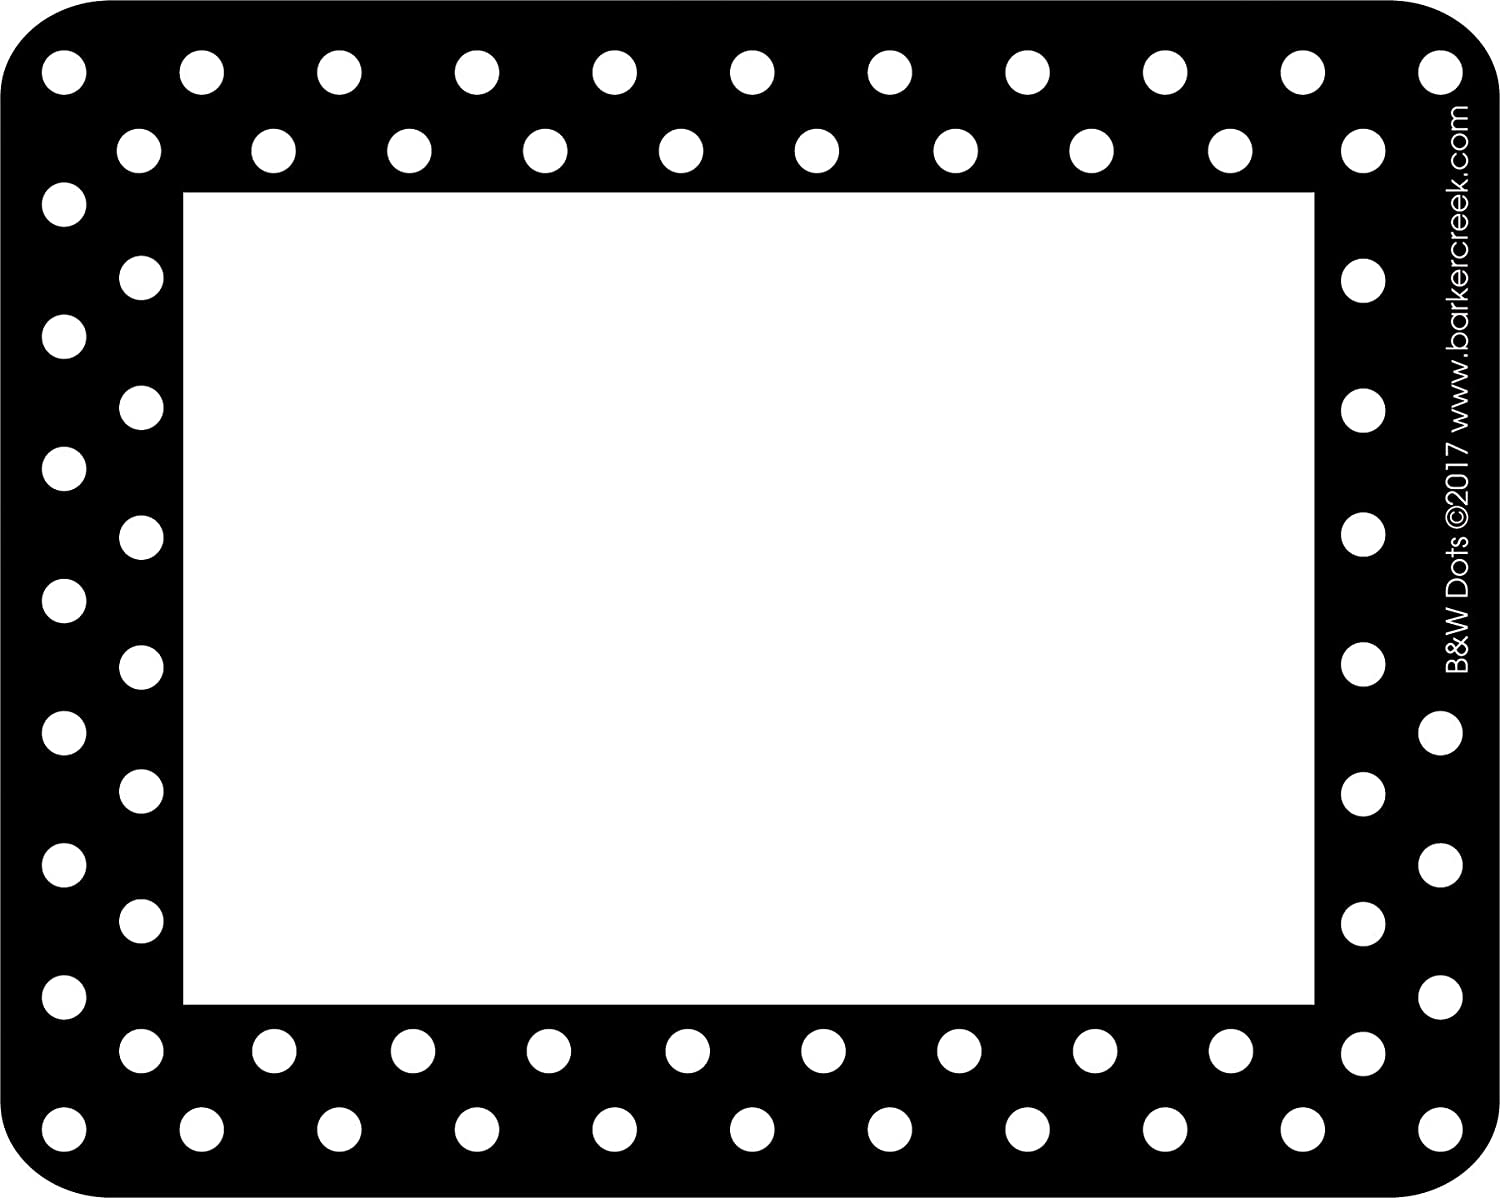 """Barker Creek - Office Products 3-1/2 x 2-3/4"""" Name Badges/Self-Adhesive Labels, 45-Count (LL-1505)"""